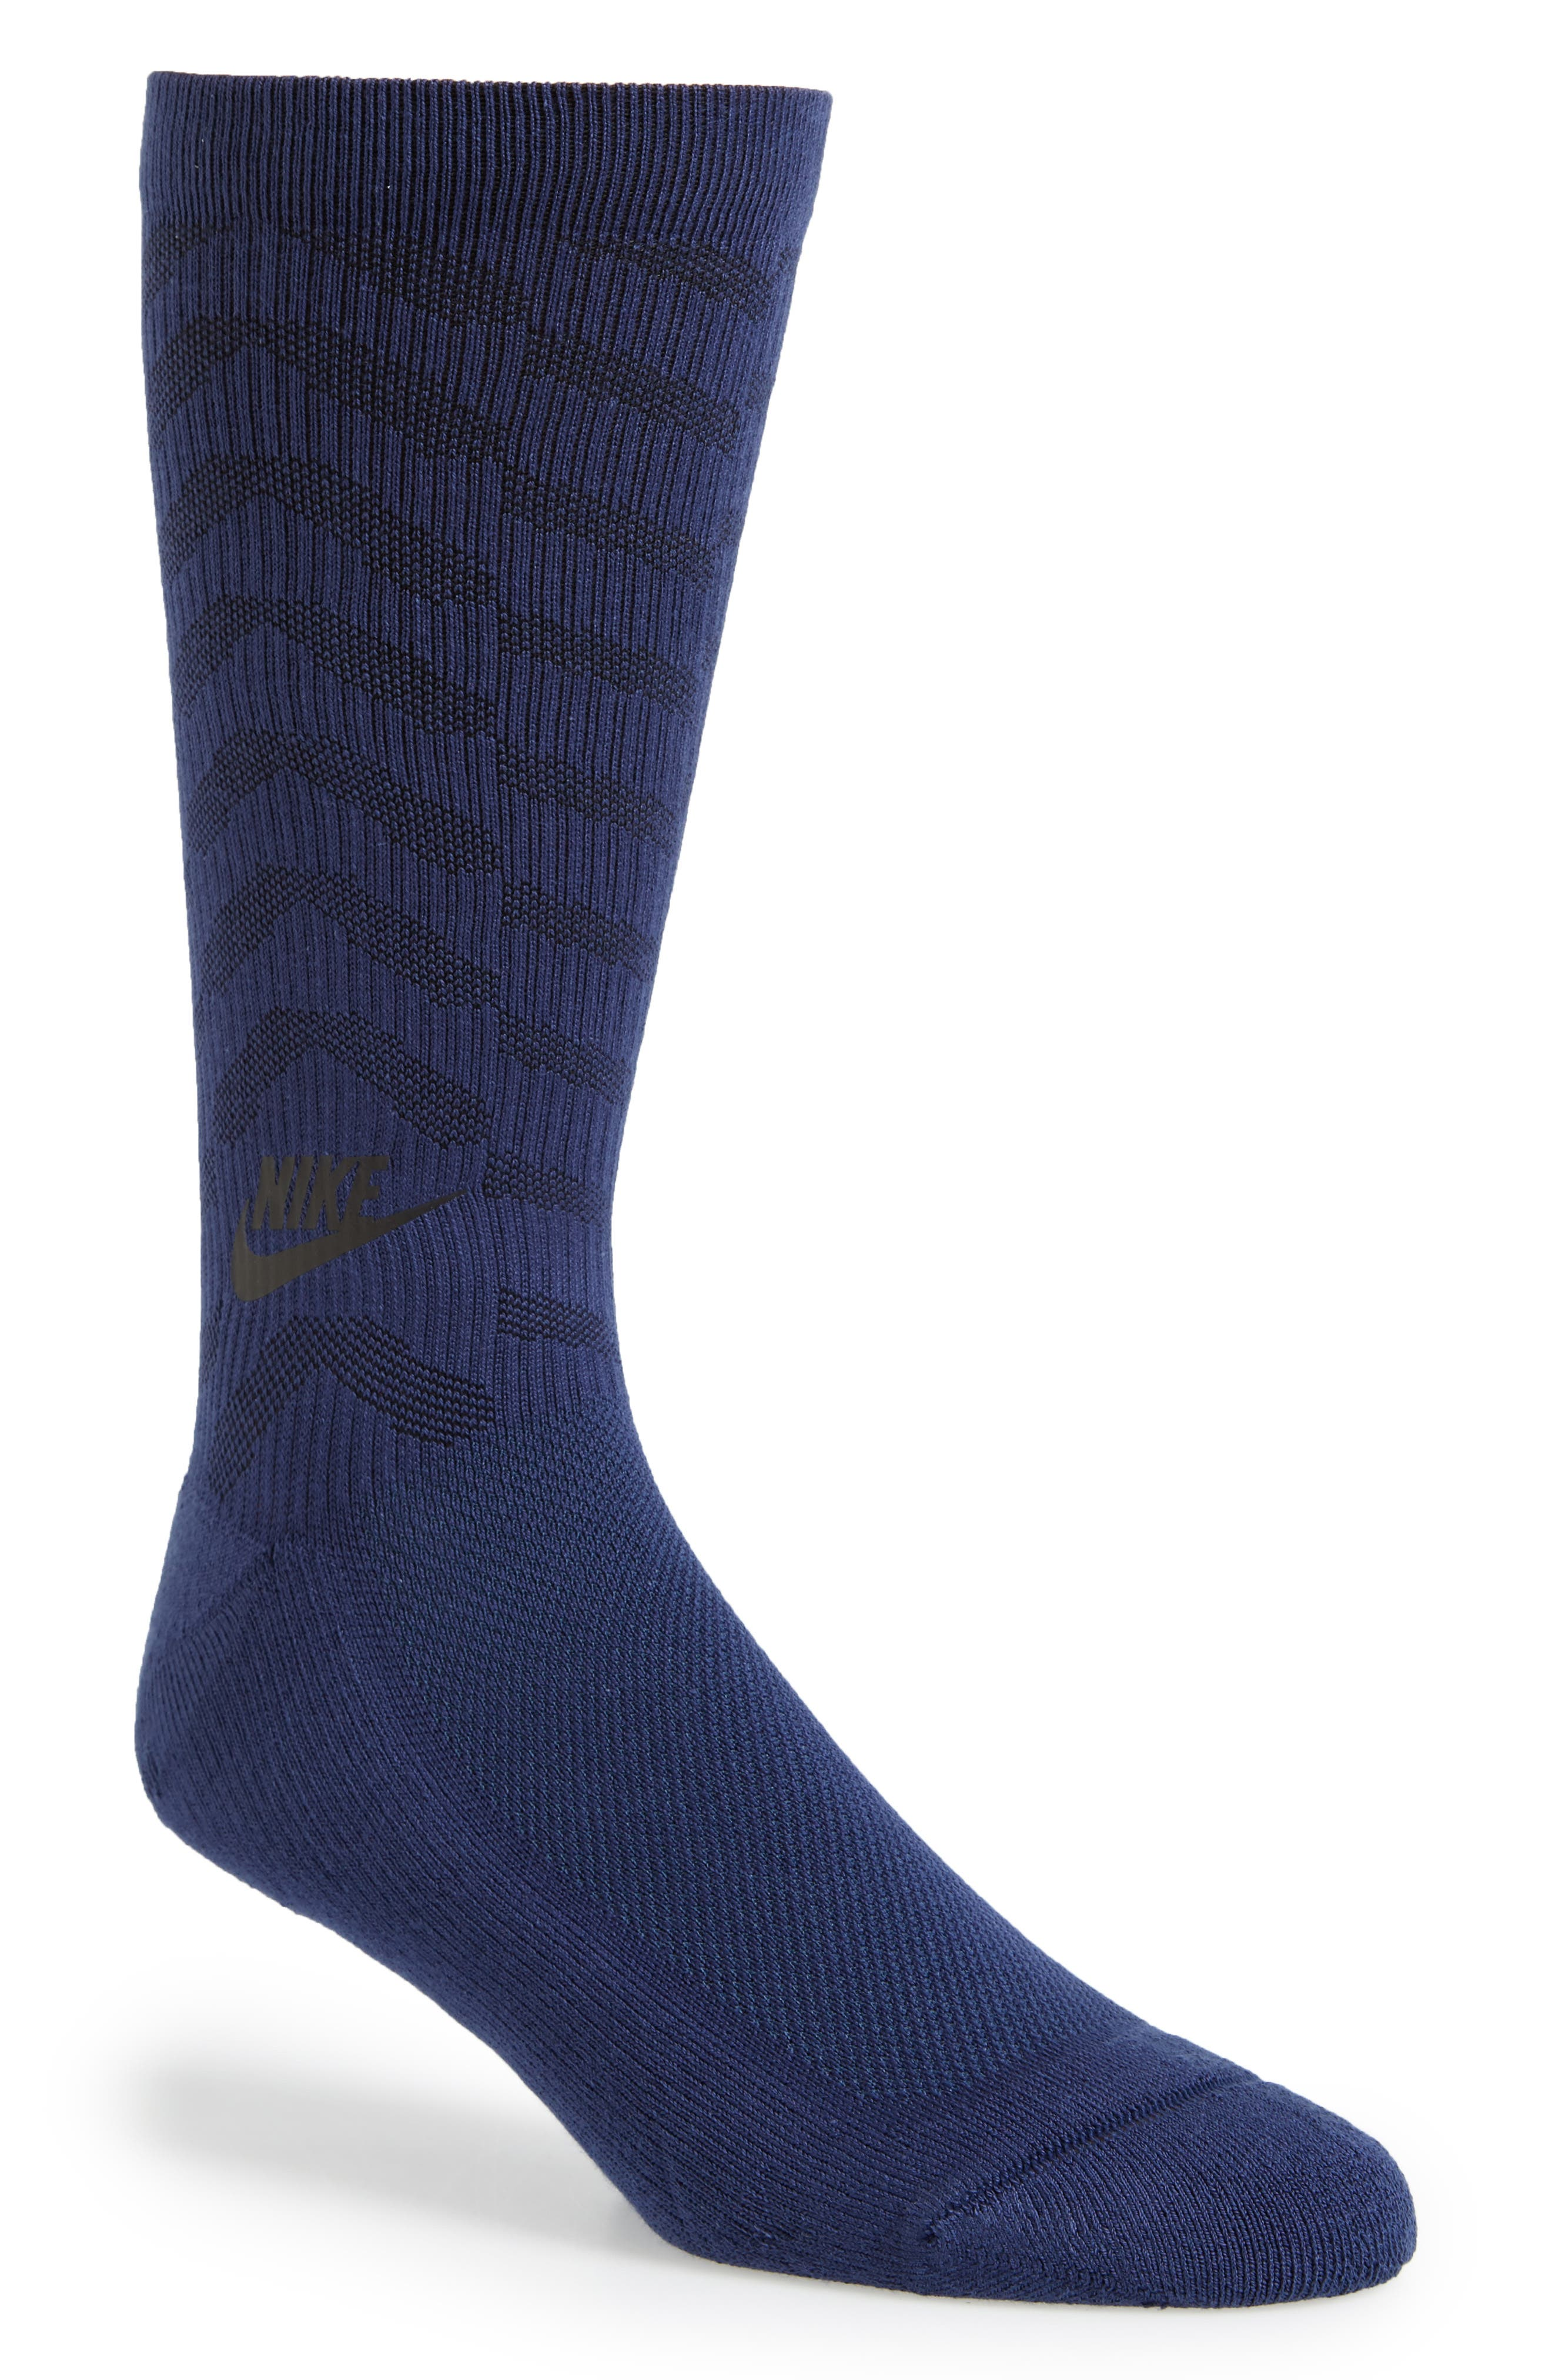 Statement Graphic Socks,                             Main thumbnail 1, color,                             Binary Blue